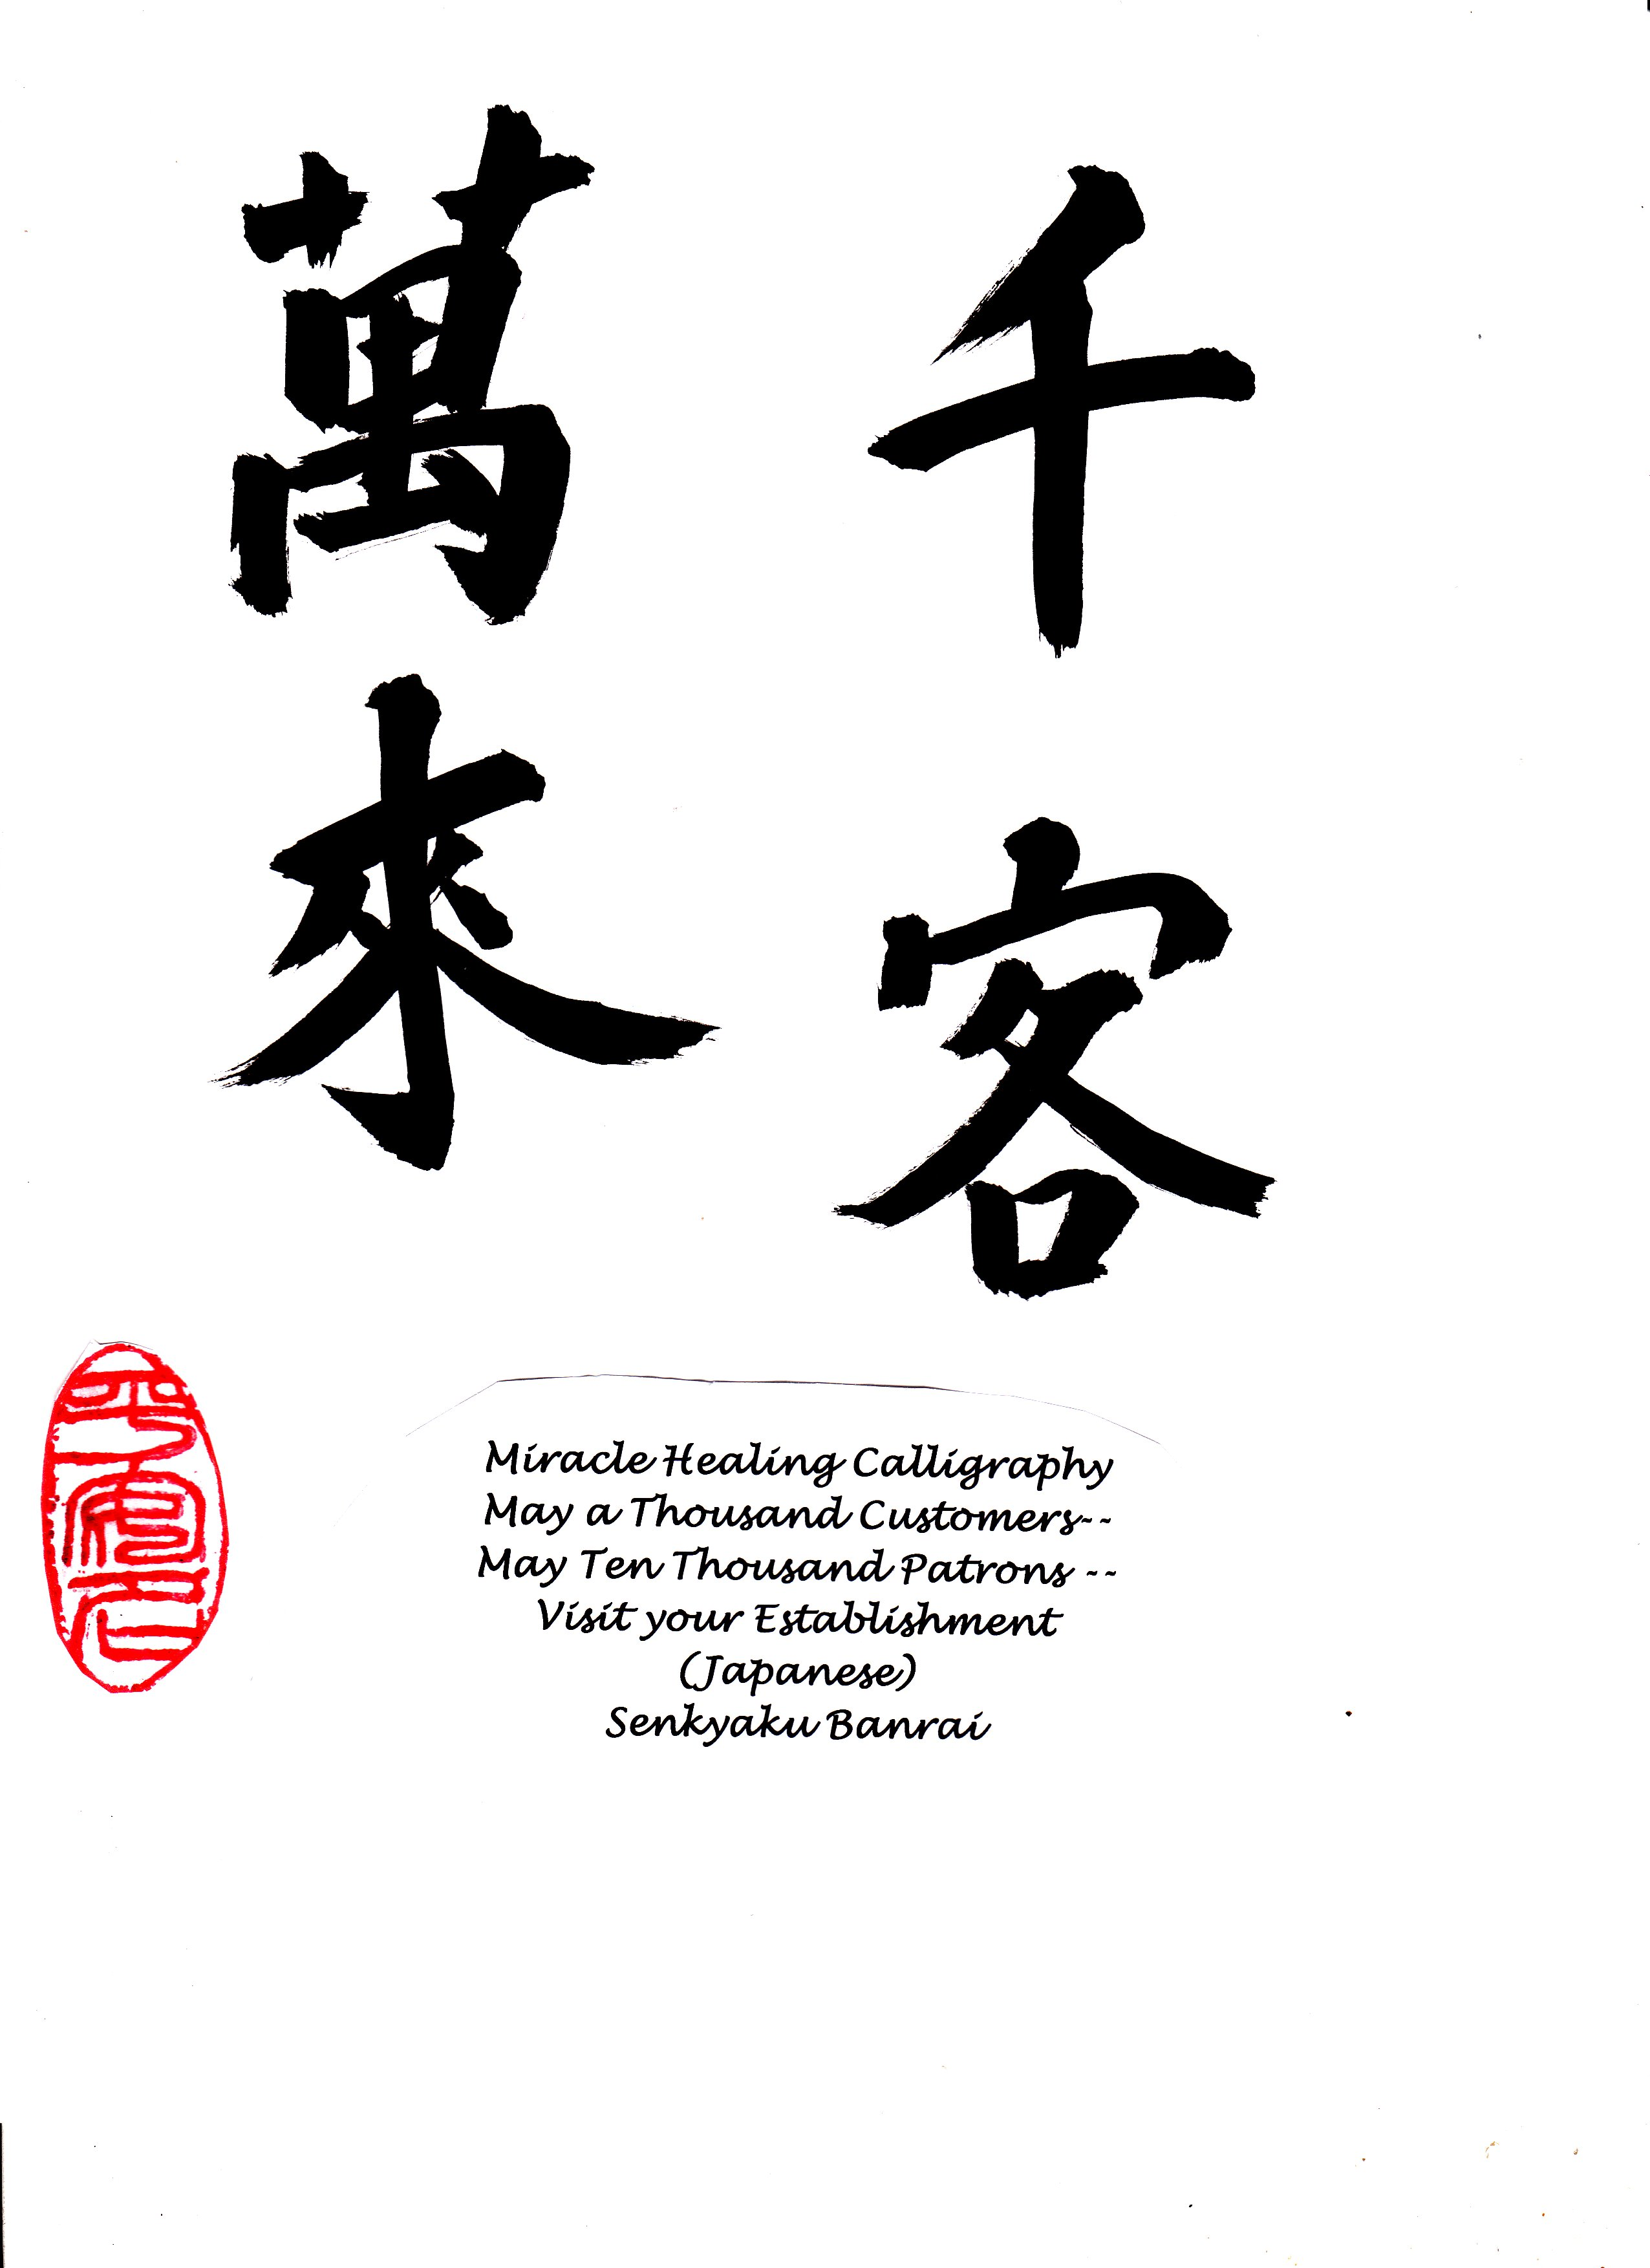 Miracle healing calligraphy may you have myriads of